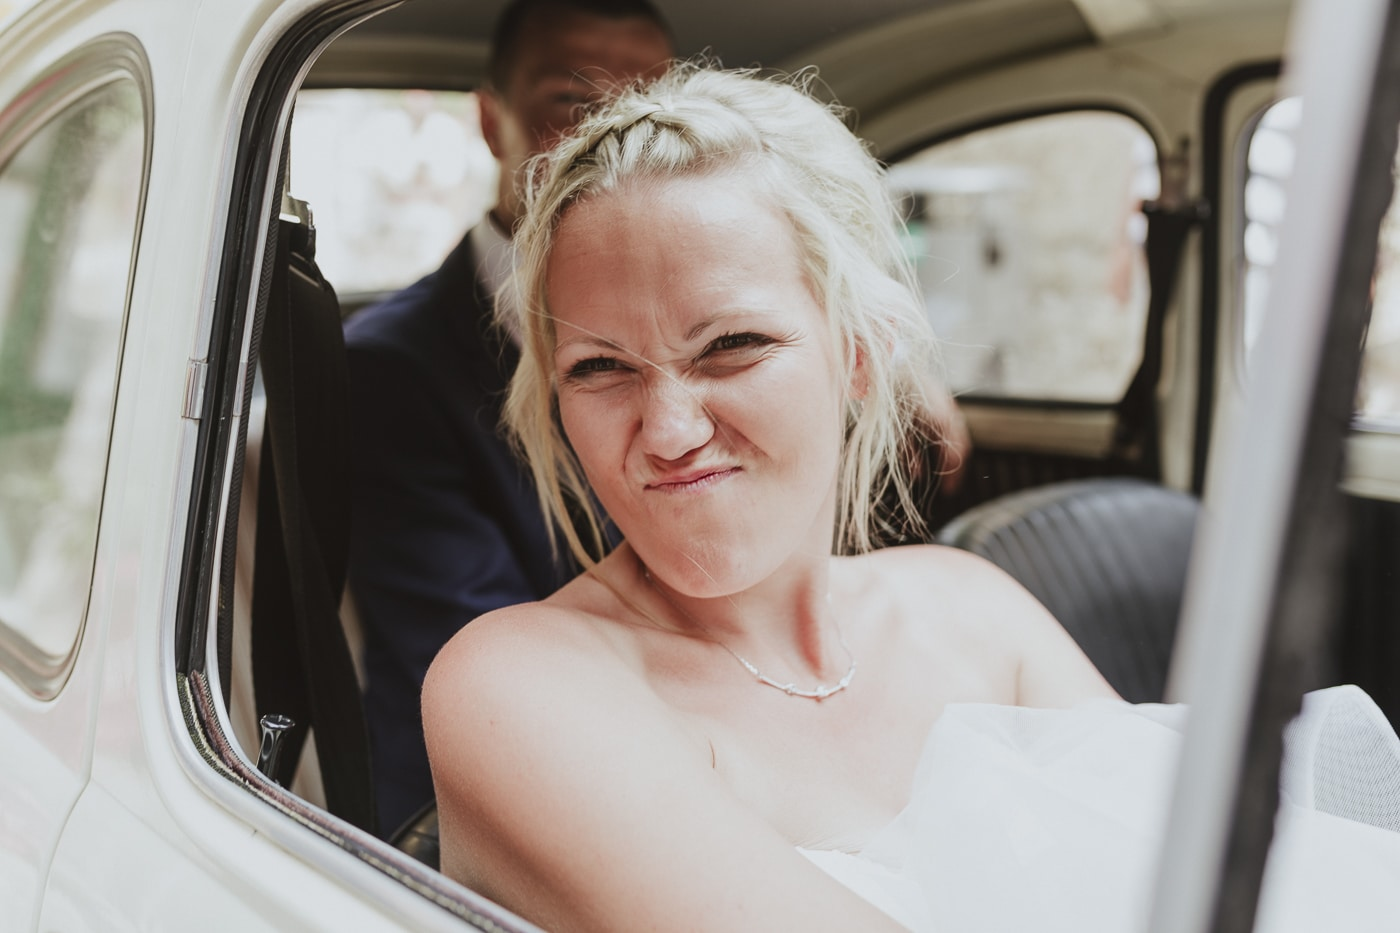 Bride with braided hair screwing up face as she attempts to park vintage car with new husband in the back seat